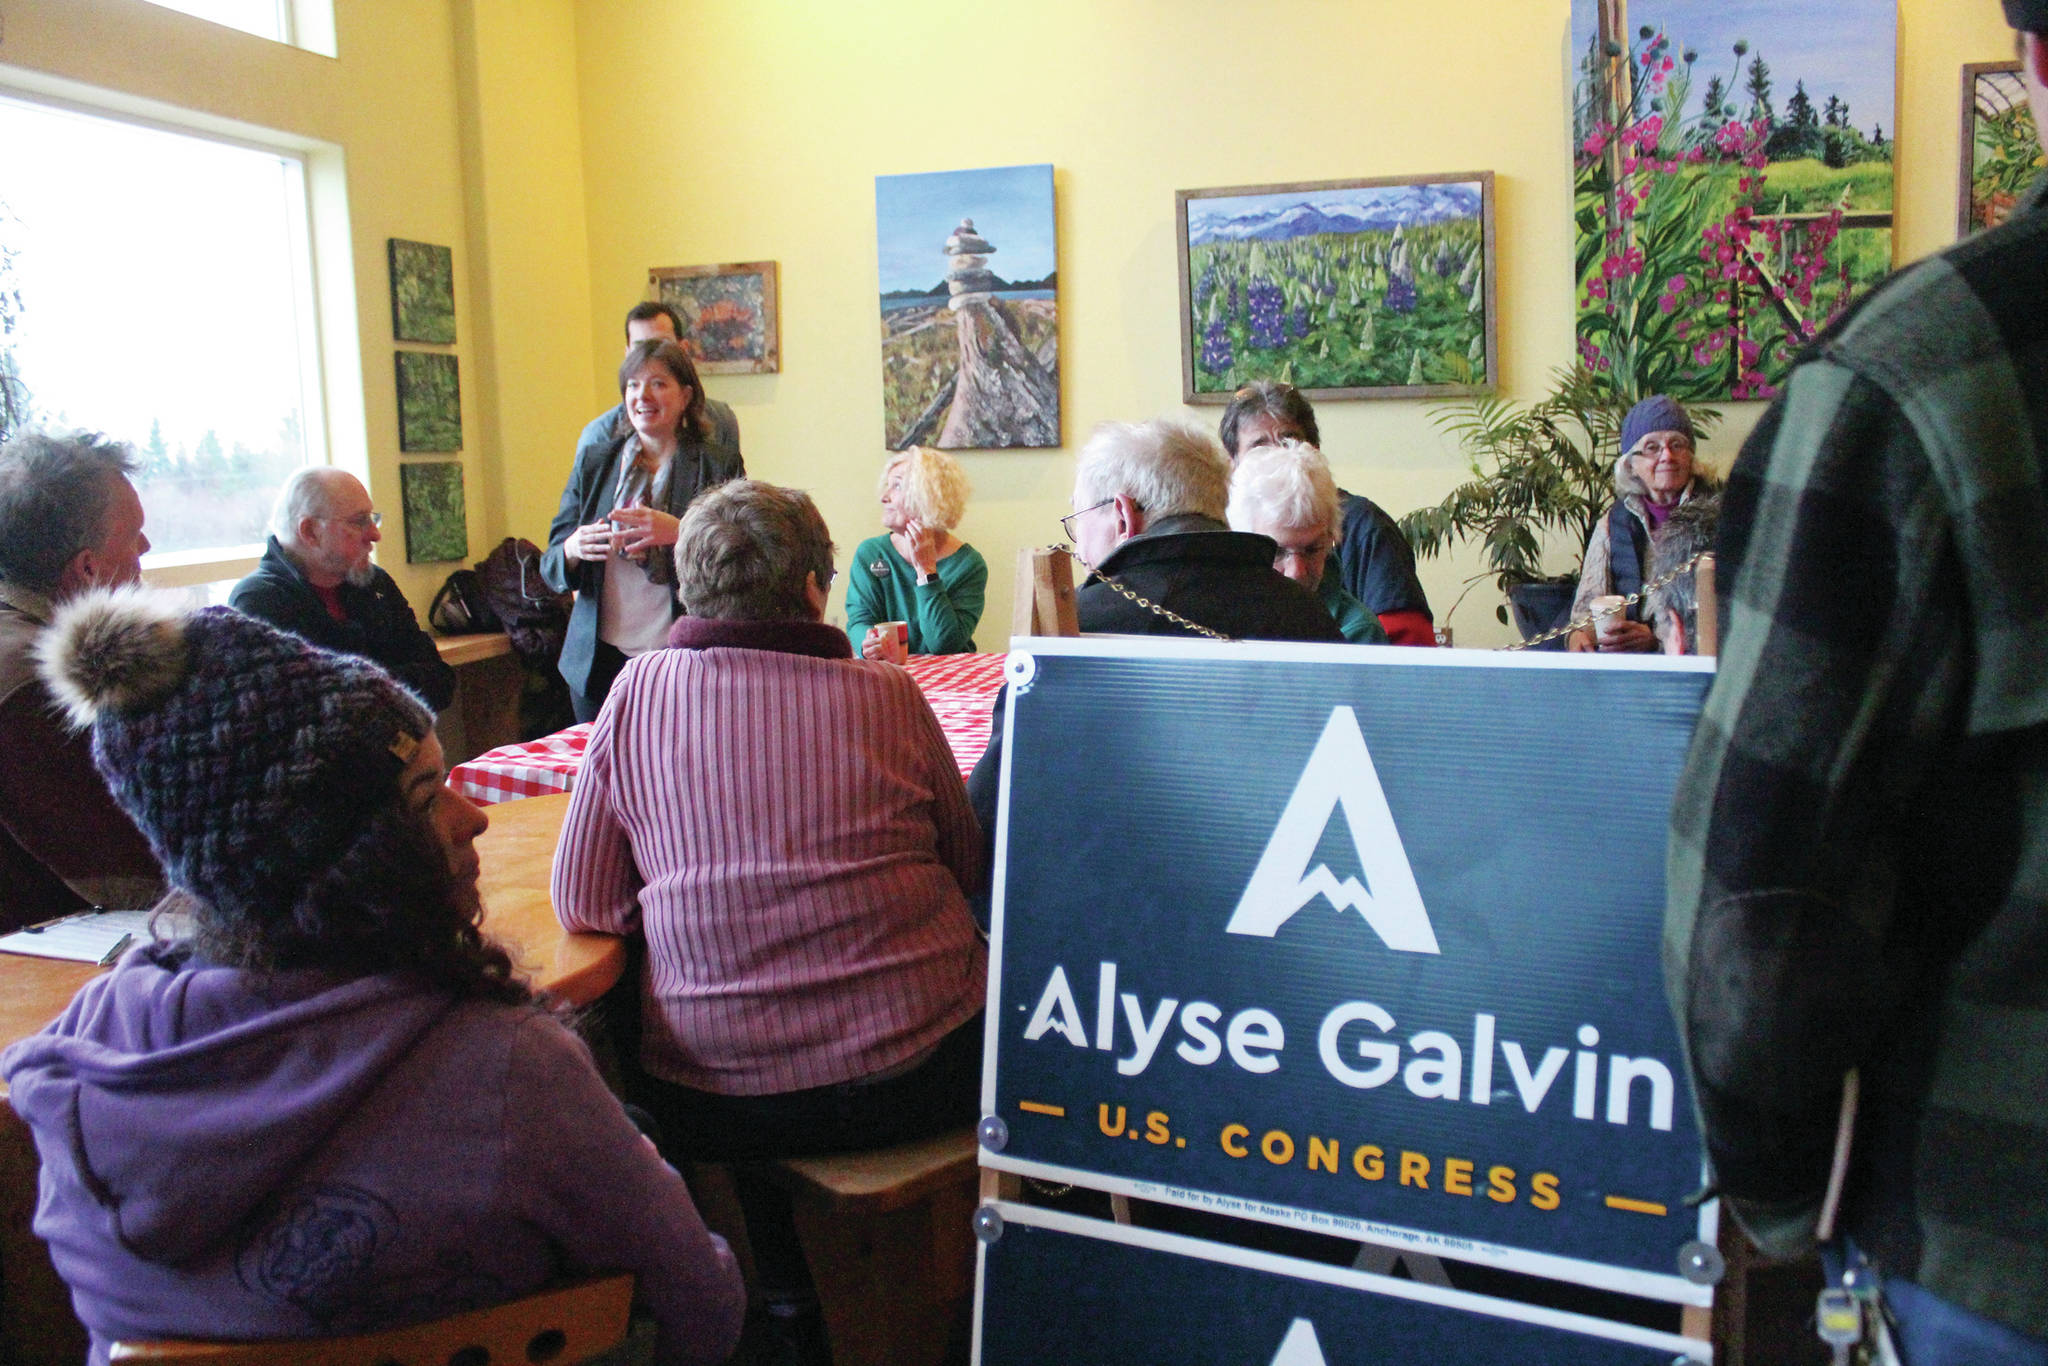 Community members listen to Alyse Galvin, who is running for the Alaska seat in the U.S. House of Representatives, speak during a meet and greet Sunday. Dec. 1, 2019 at K-Bay Caffee in Homer, Alaska. Galvin first ran to unseat Rep. Don Young in 2018. (Photo by Megan Pacer/Homer News)